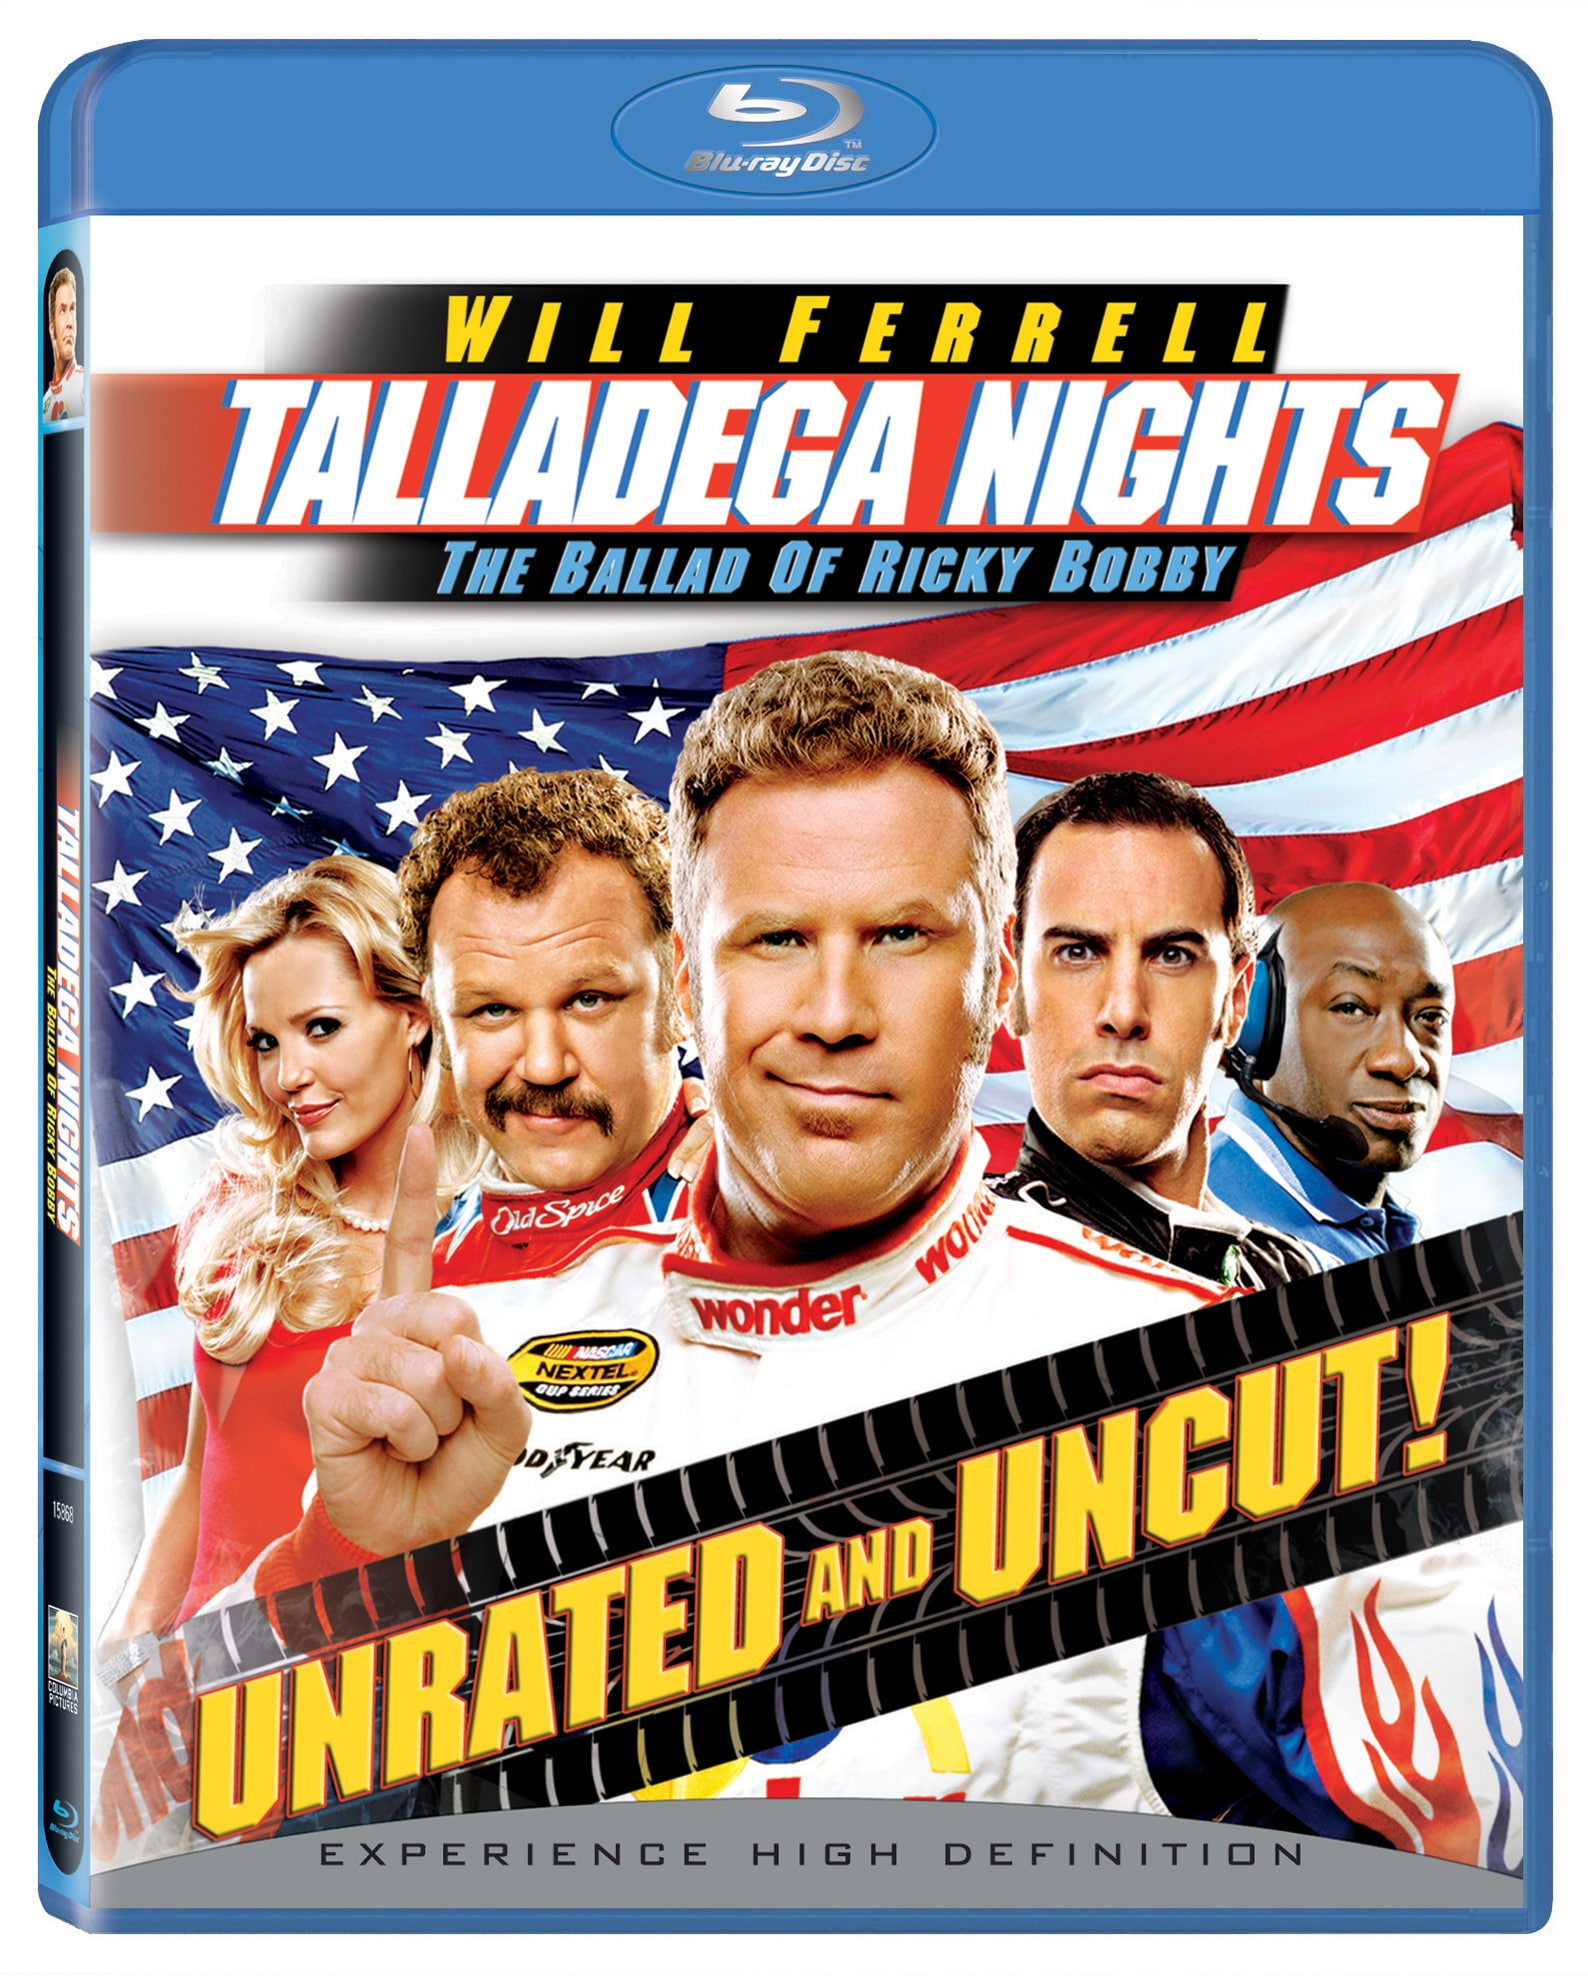 Talladega Nights: The Ballad of Ricky Bobby (Blu-ray Disc)